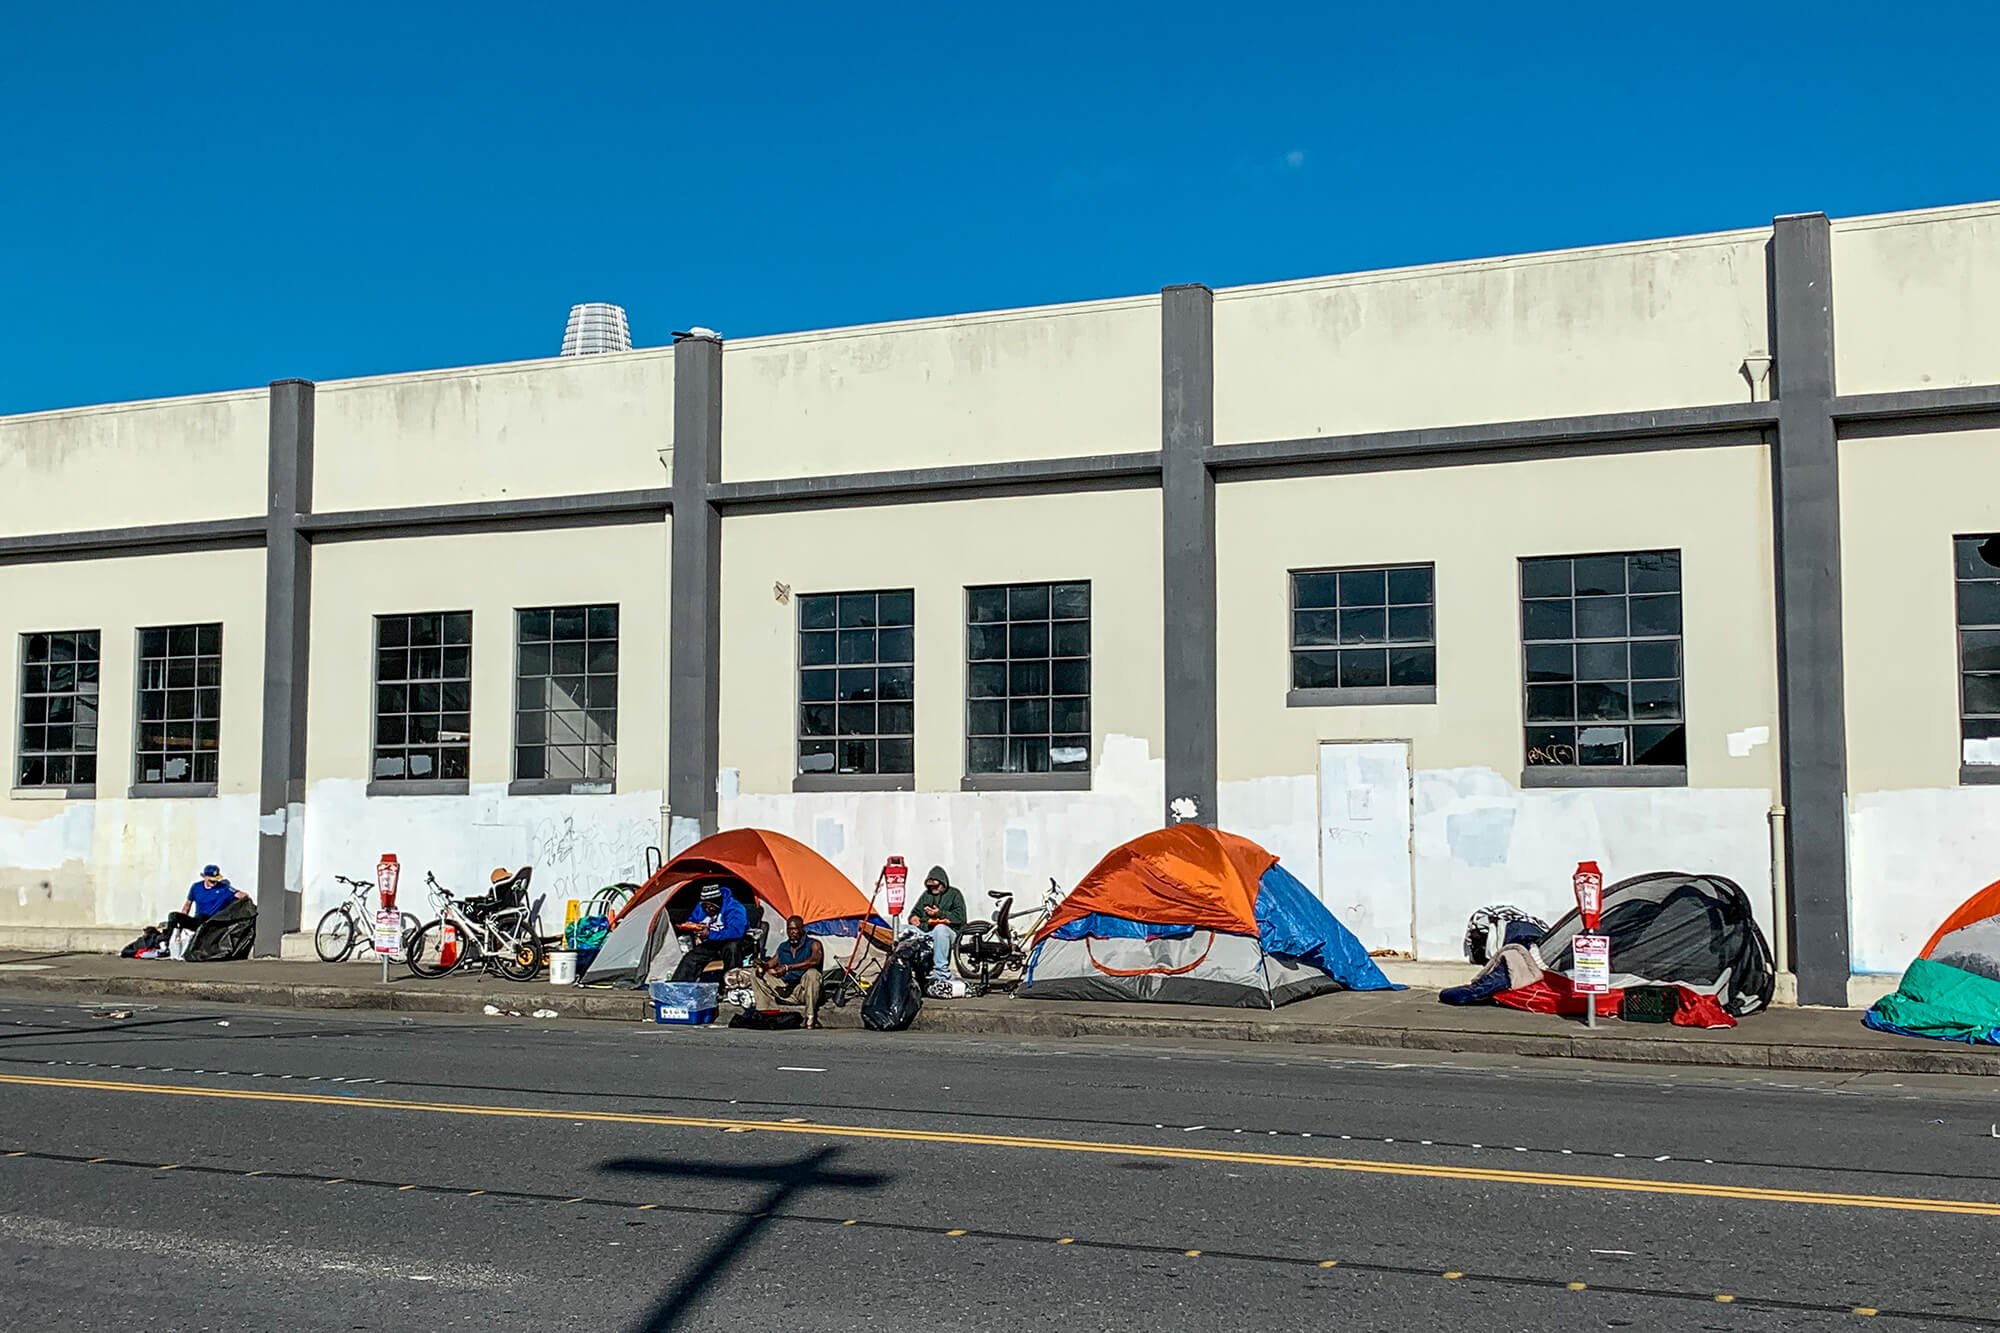 San Francisco tents on sidewalk at 5th and Brannan